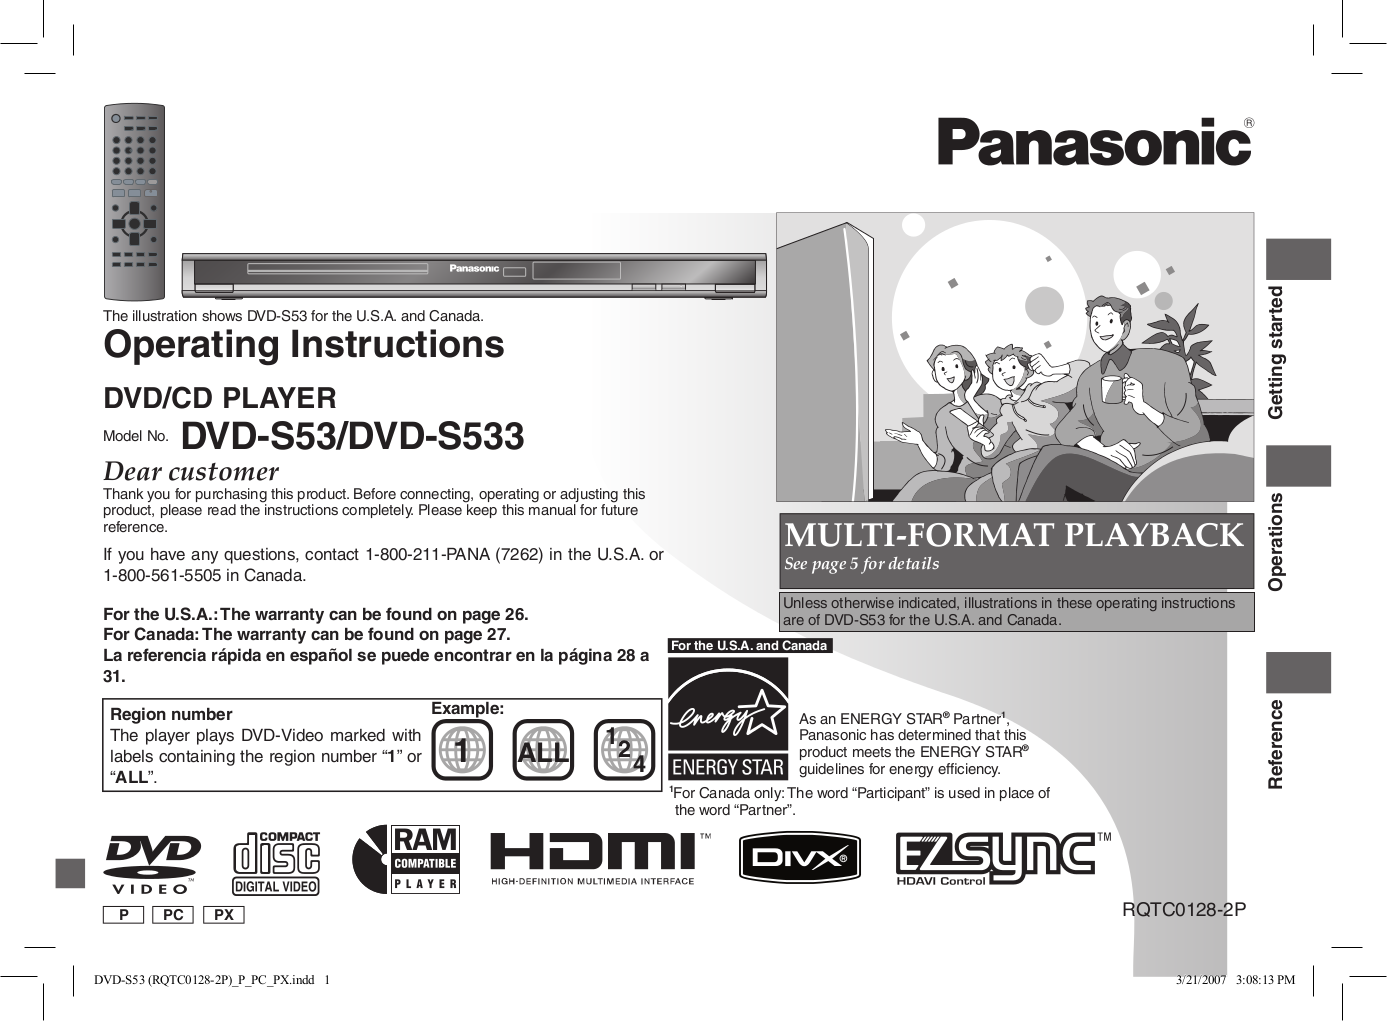 download free pdf for panasonic dvd s53 dvd players manual rh umlib com panasonic s53 dvd player manual Panasonic DVD CD Player